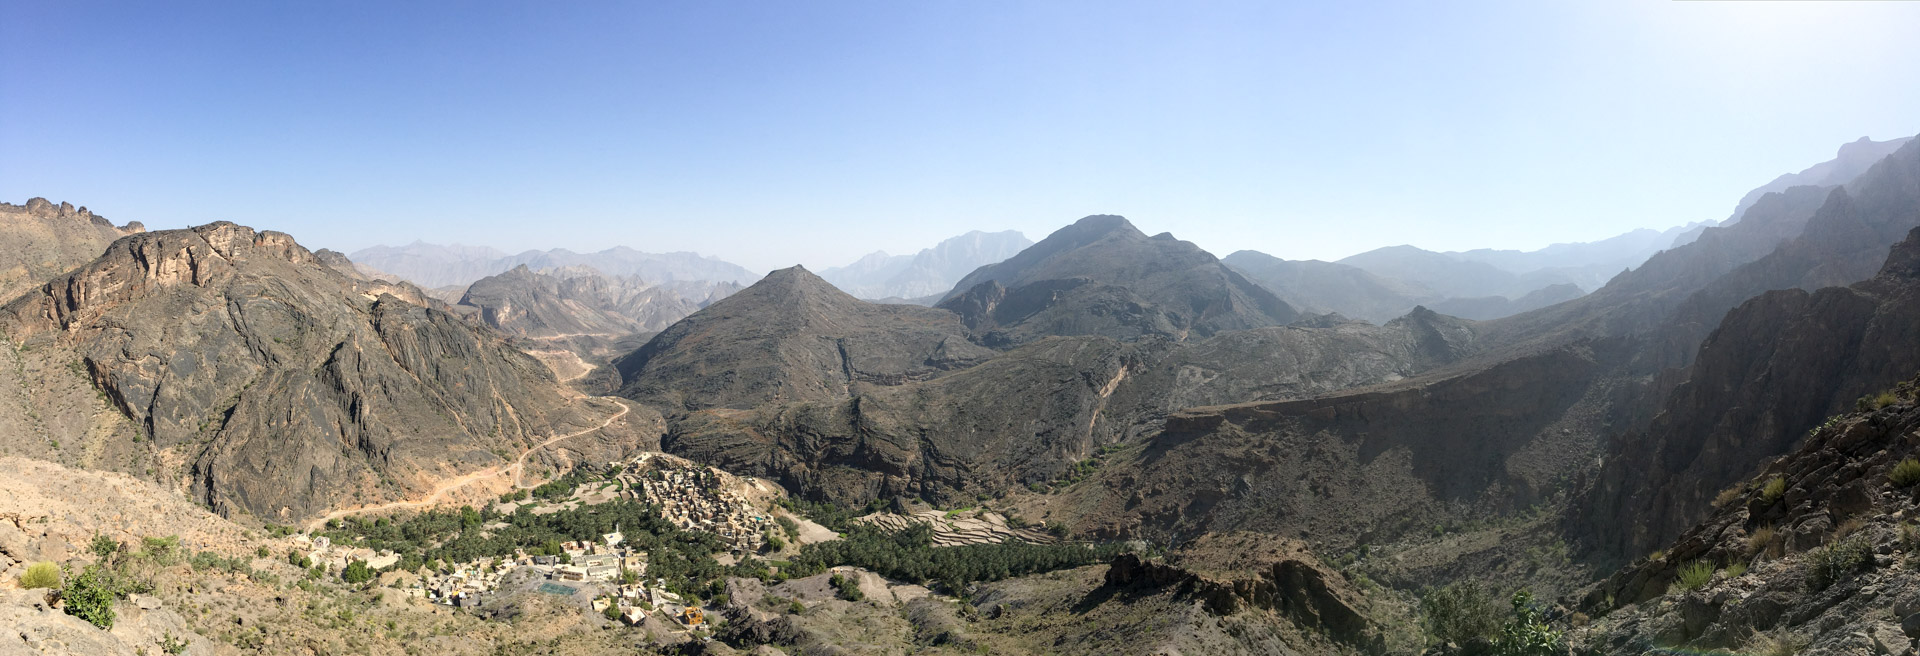 Overlooking Bilad Sayt and into Wadi Bani Awf.